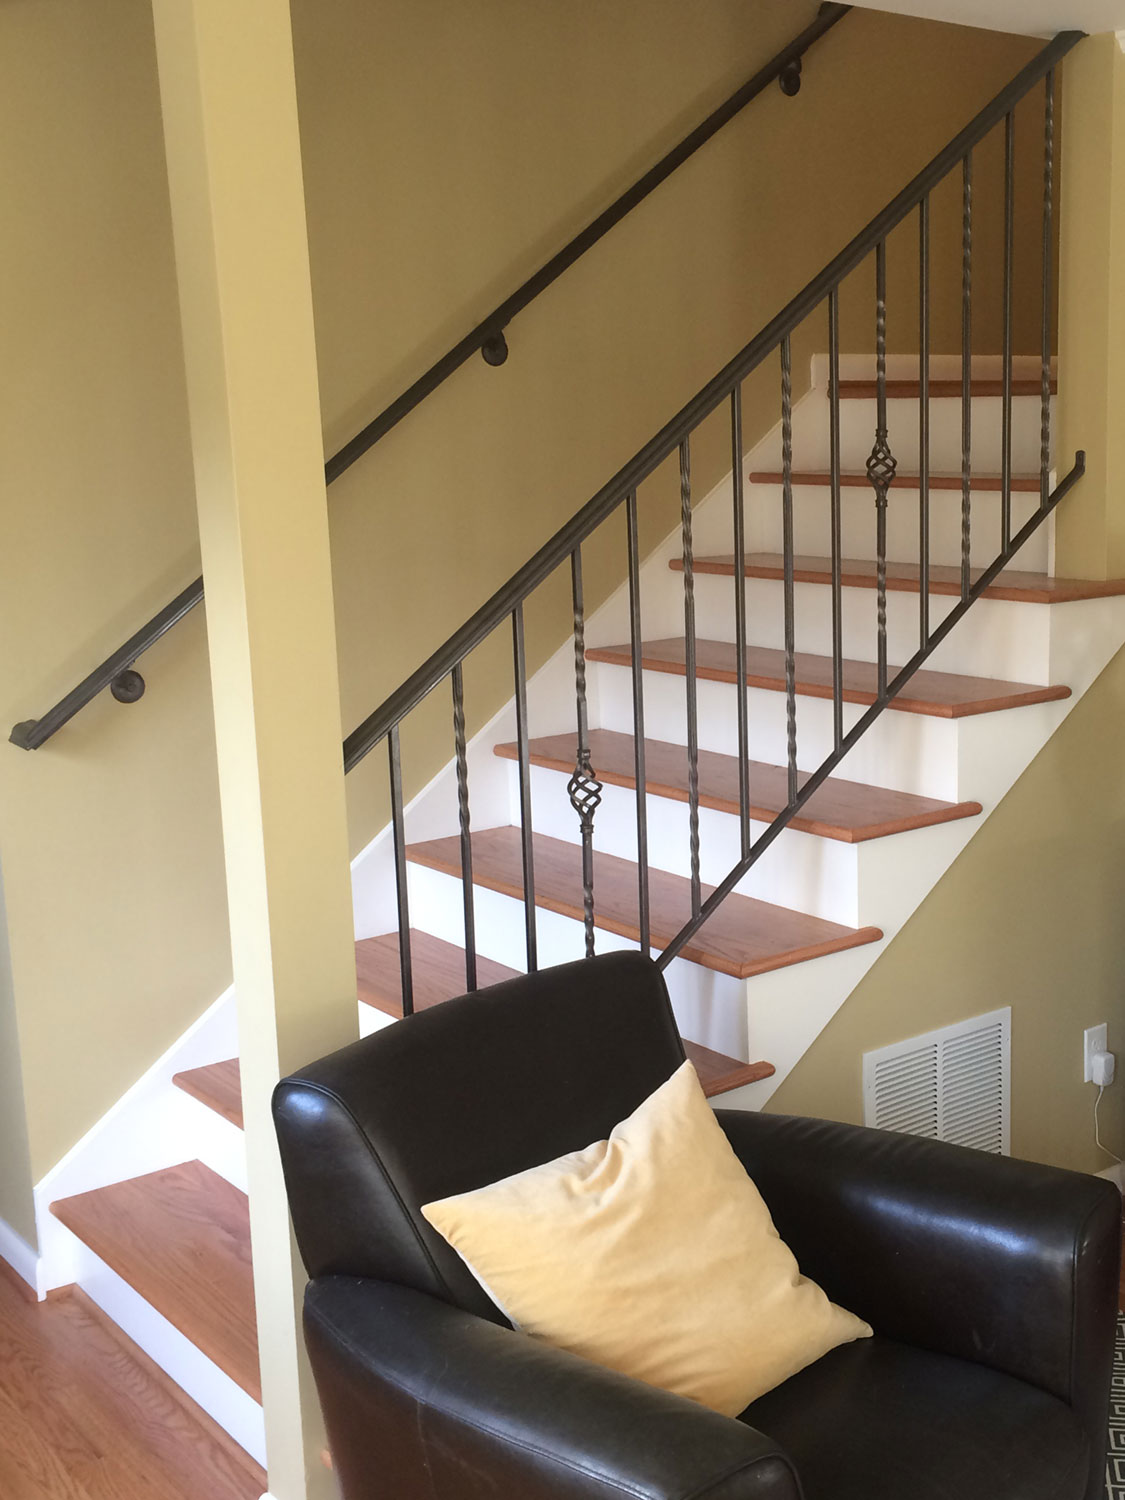 Traditional Handrail And Guardrail For Interior Stairs